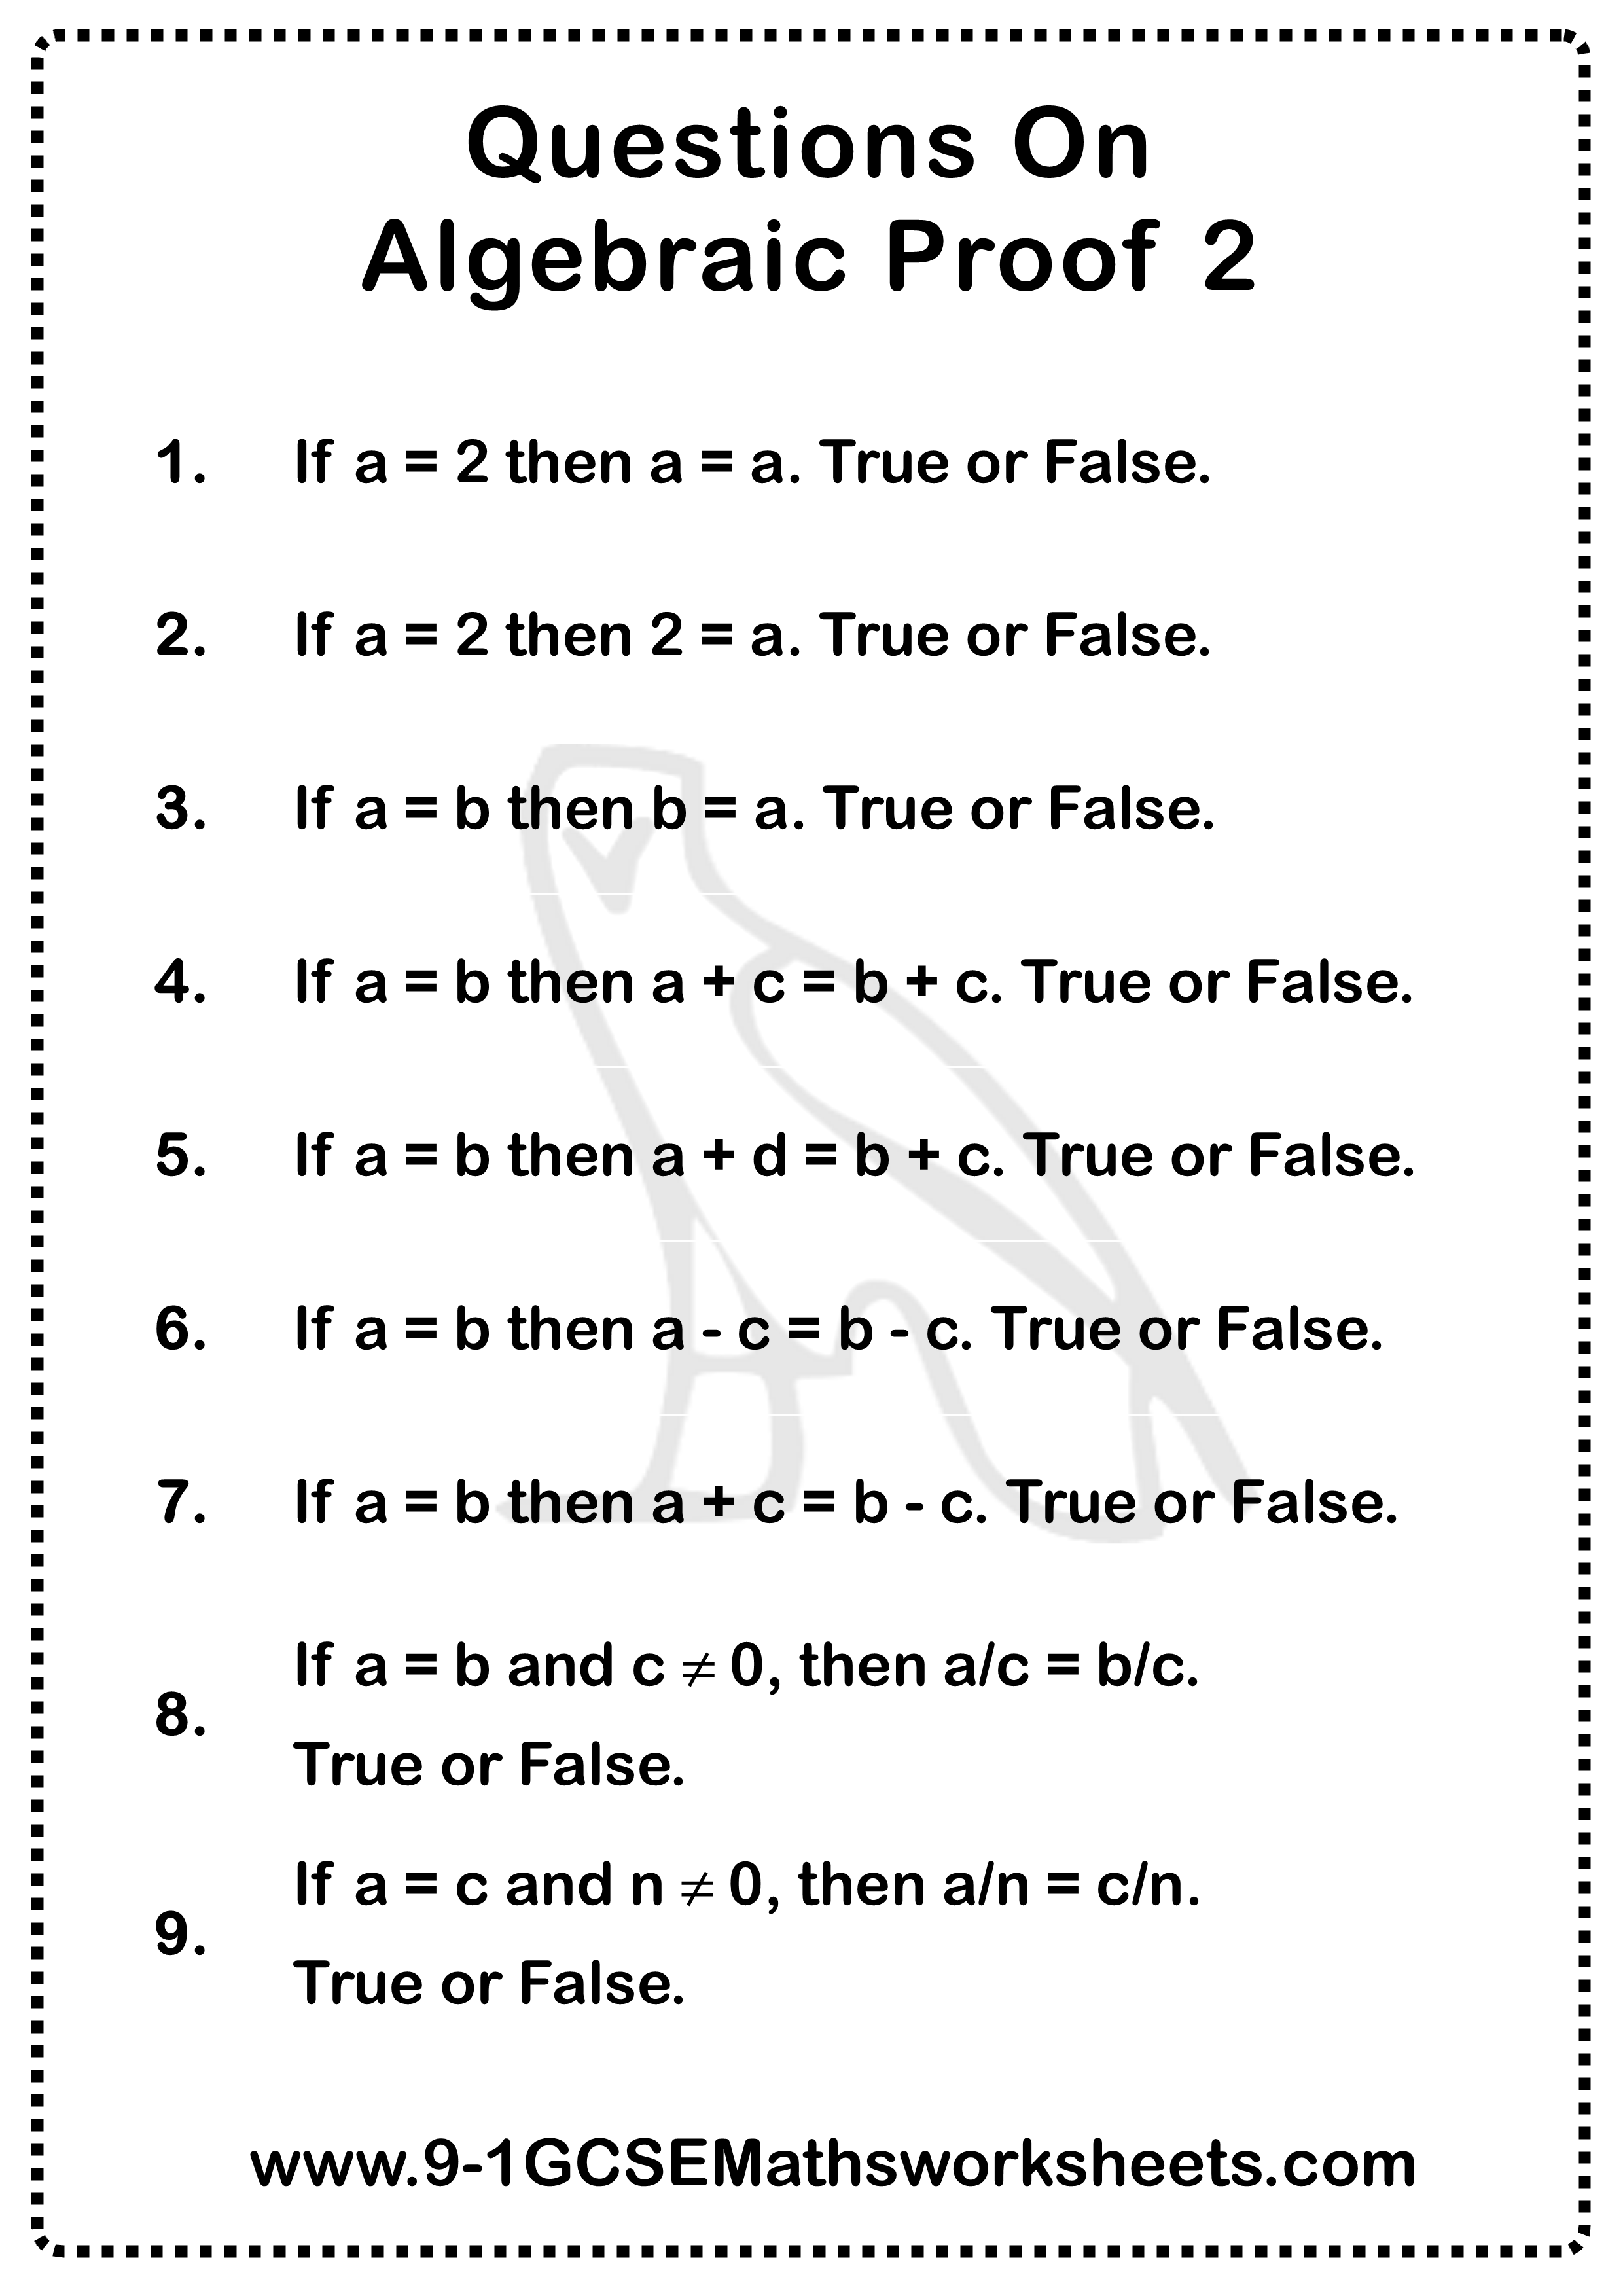 Algebraic Proof Questions 2 Algebraic Proof This Or That Questions Simplifying Expressions